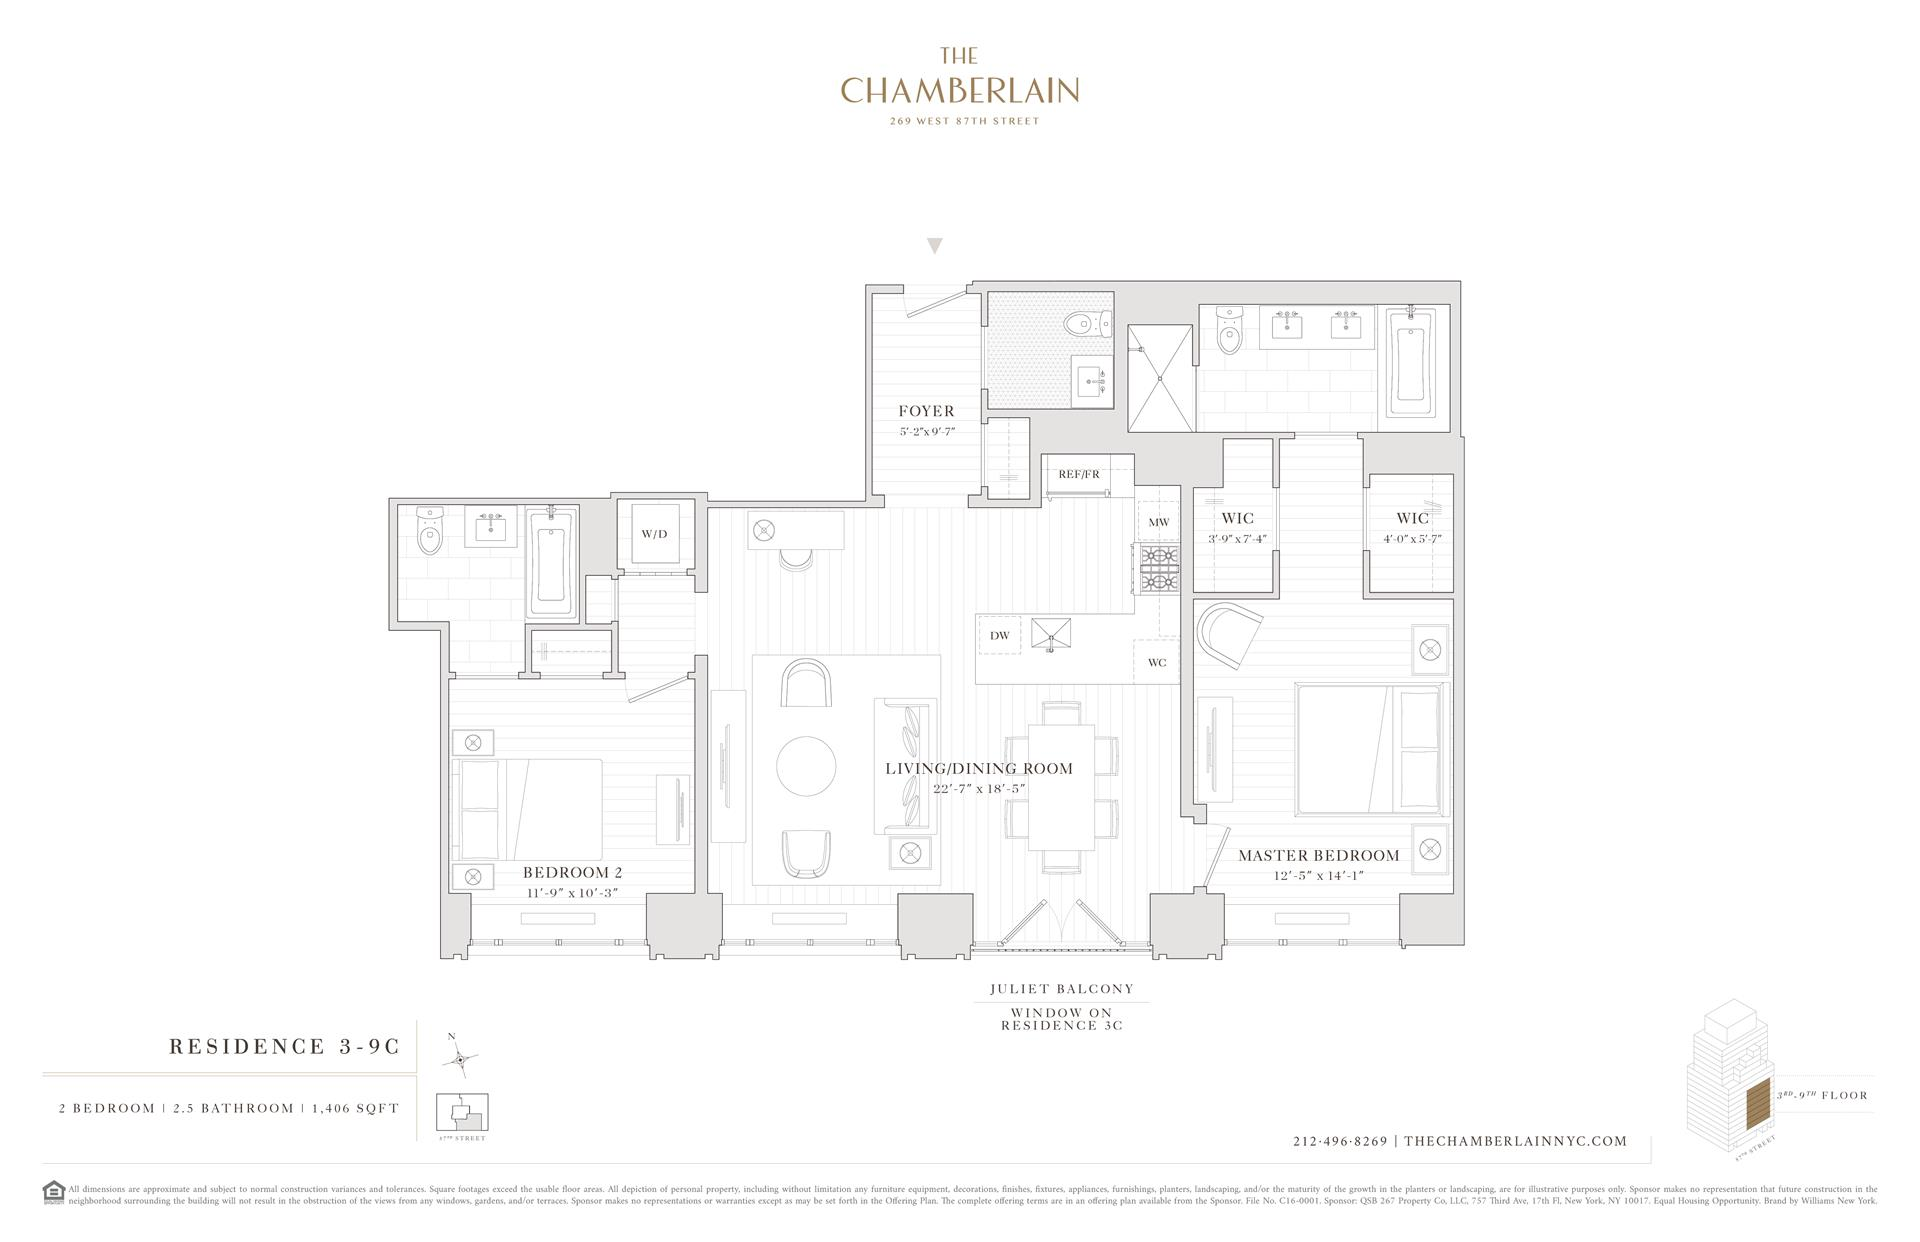 Floor plan of 269 West 87th St, 7C - Upper West Side, New York